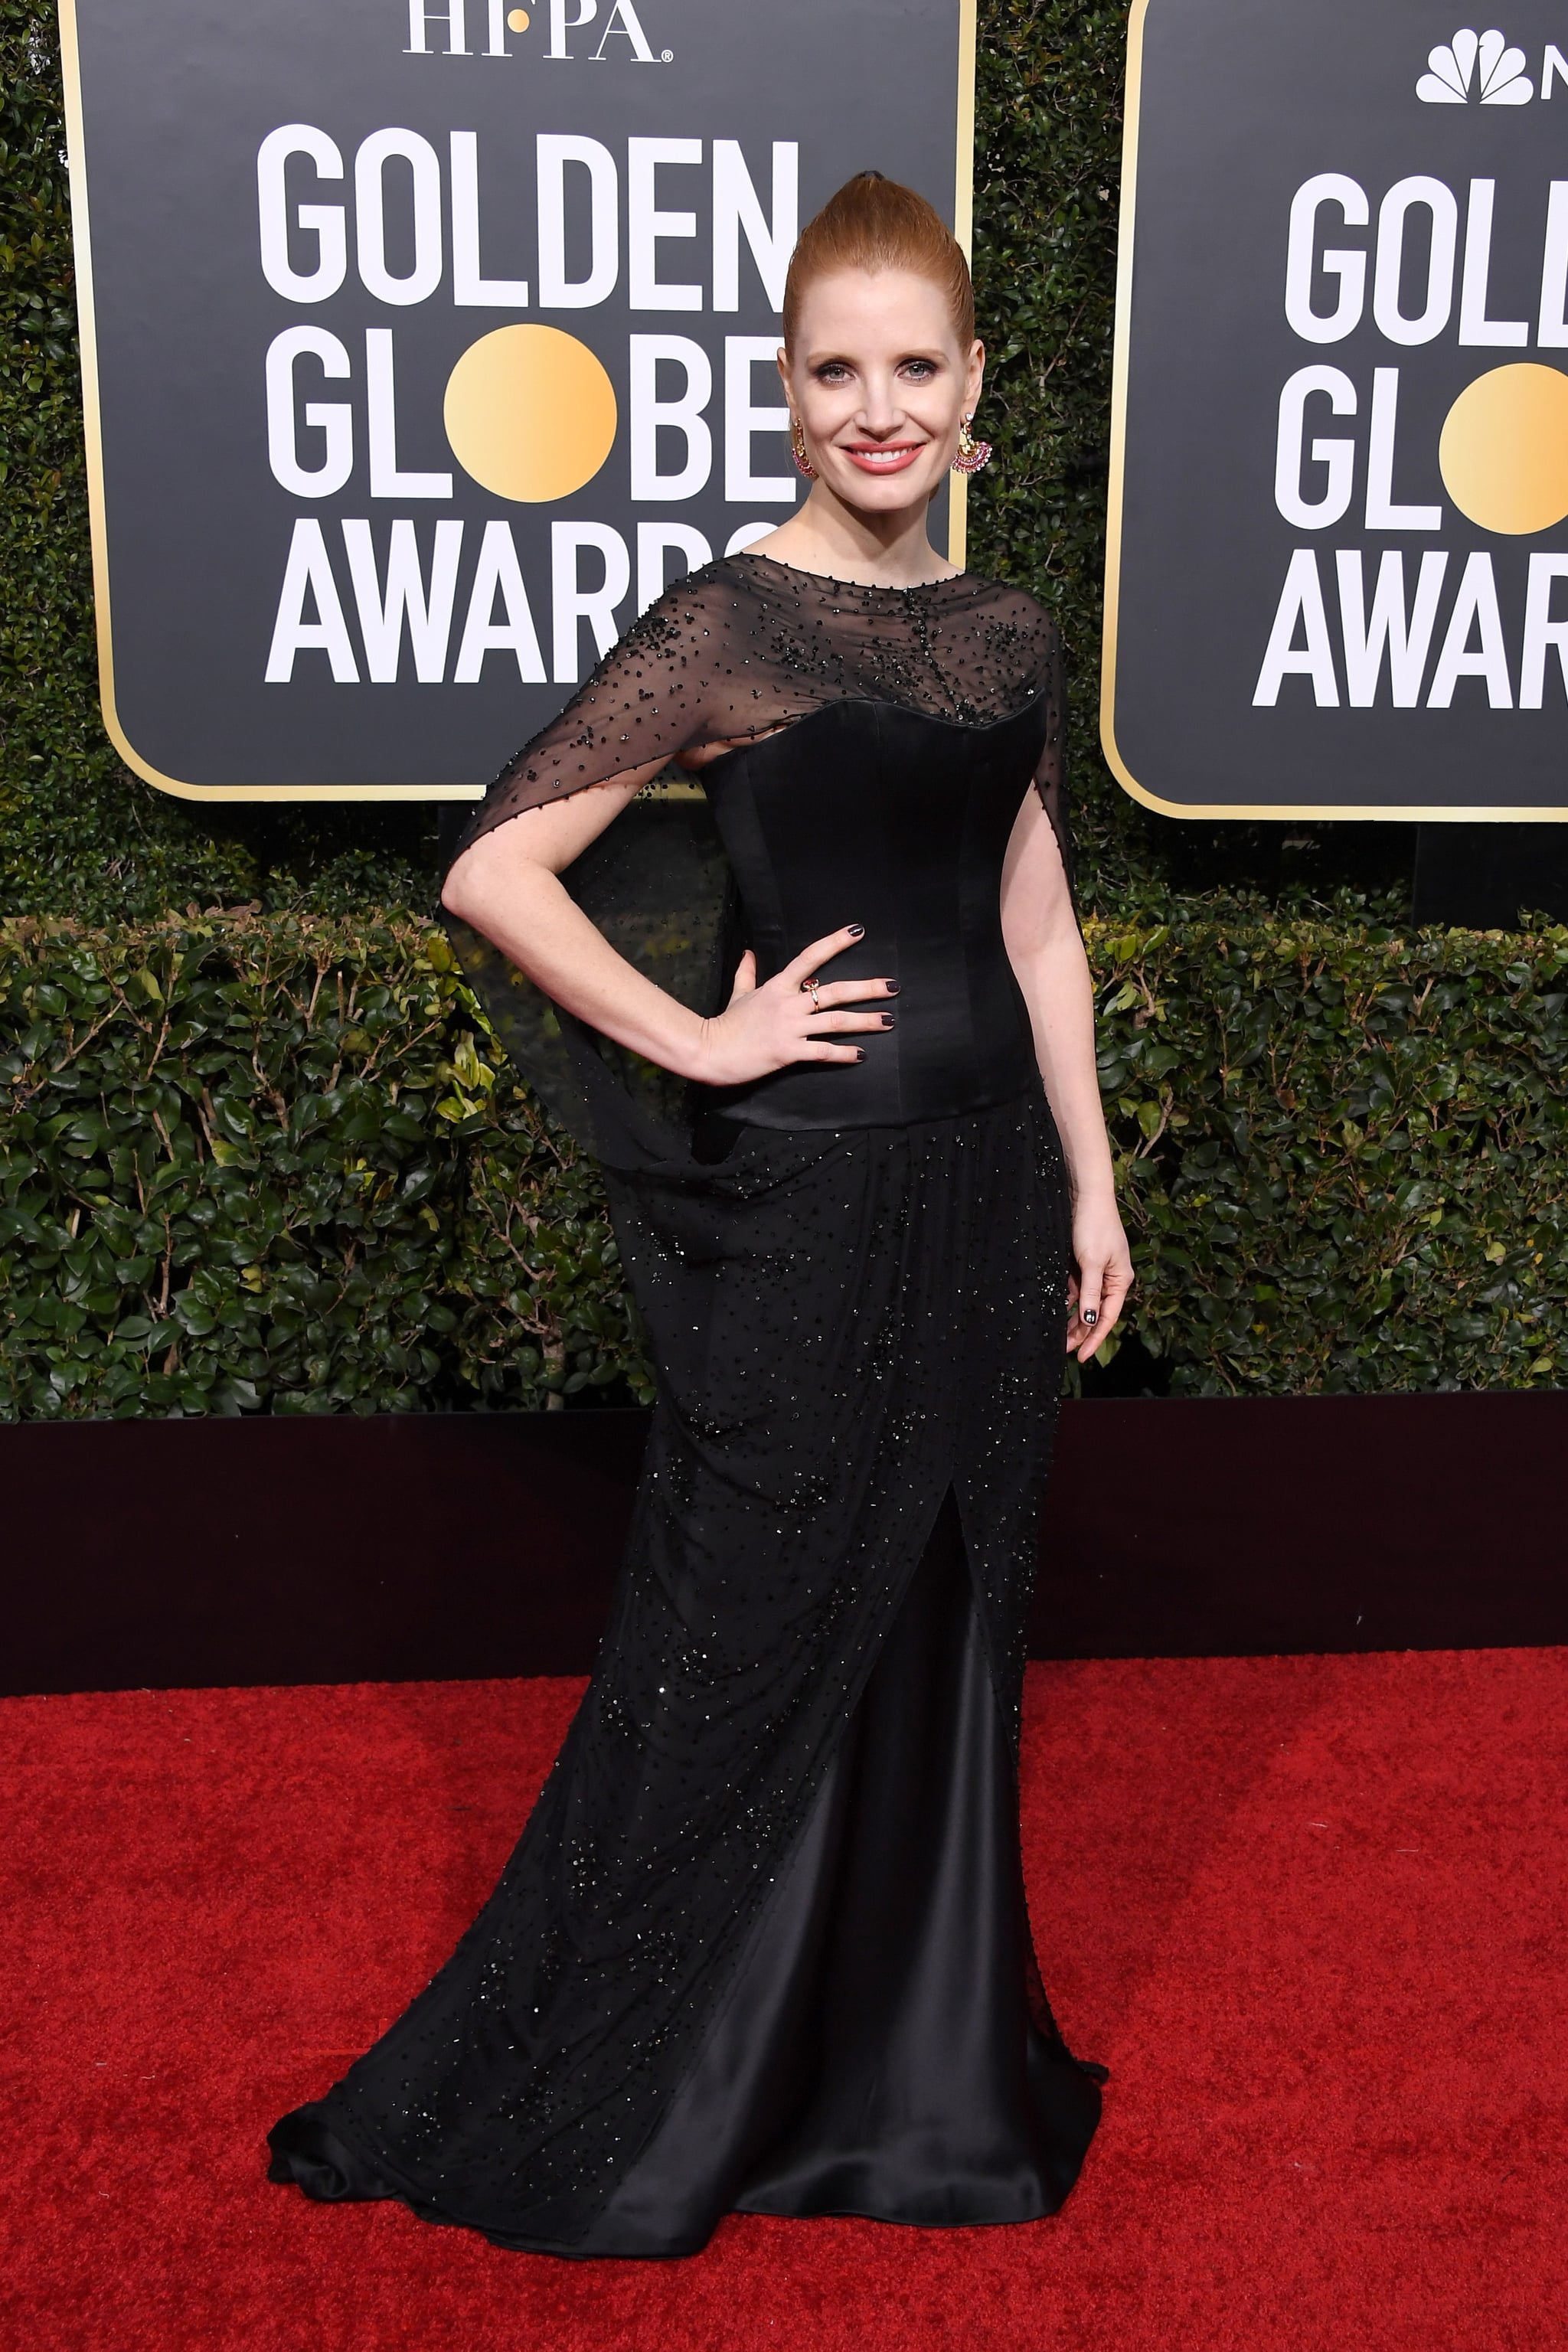 BEVERLY HILLS, CA - JANUARY 06:  Jessica Chastain attends the 76th Annual Golden Globe Awards at The Beverly Hilton Hotel on January 6, 2019 in Beverly Hills, California.  (Photo by Steve Granitz/WireImage)